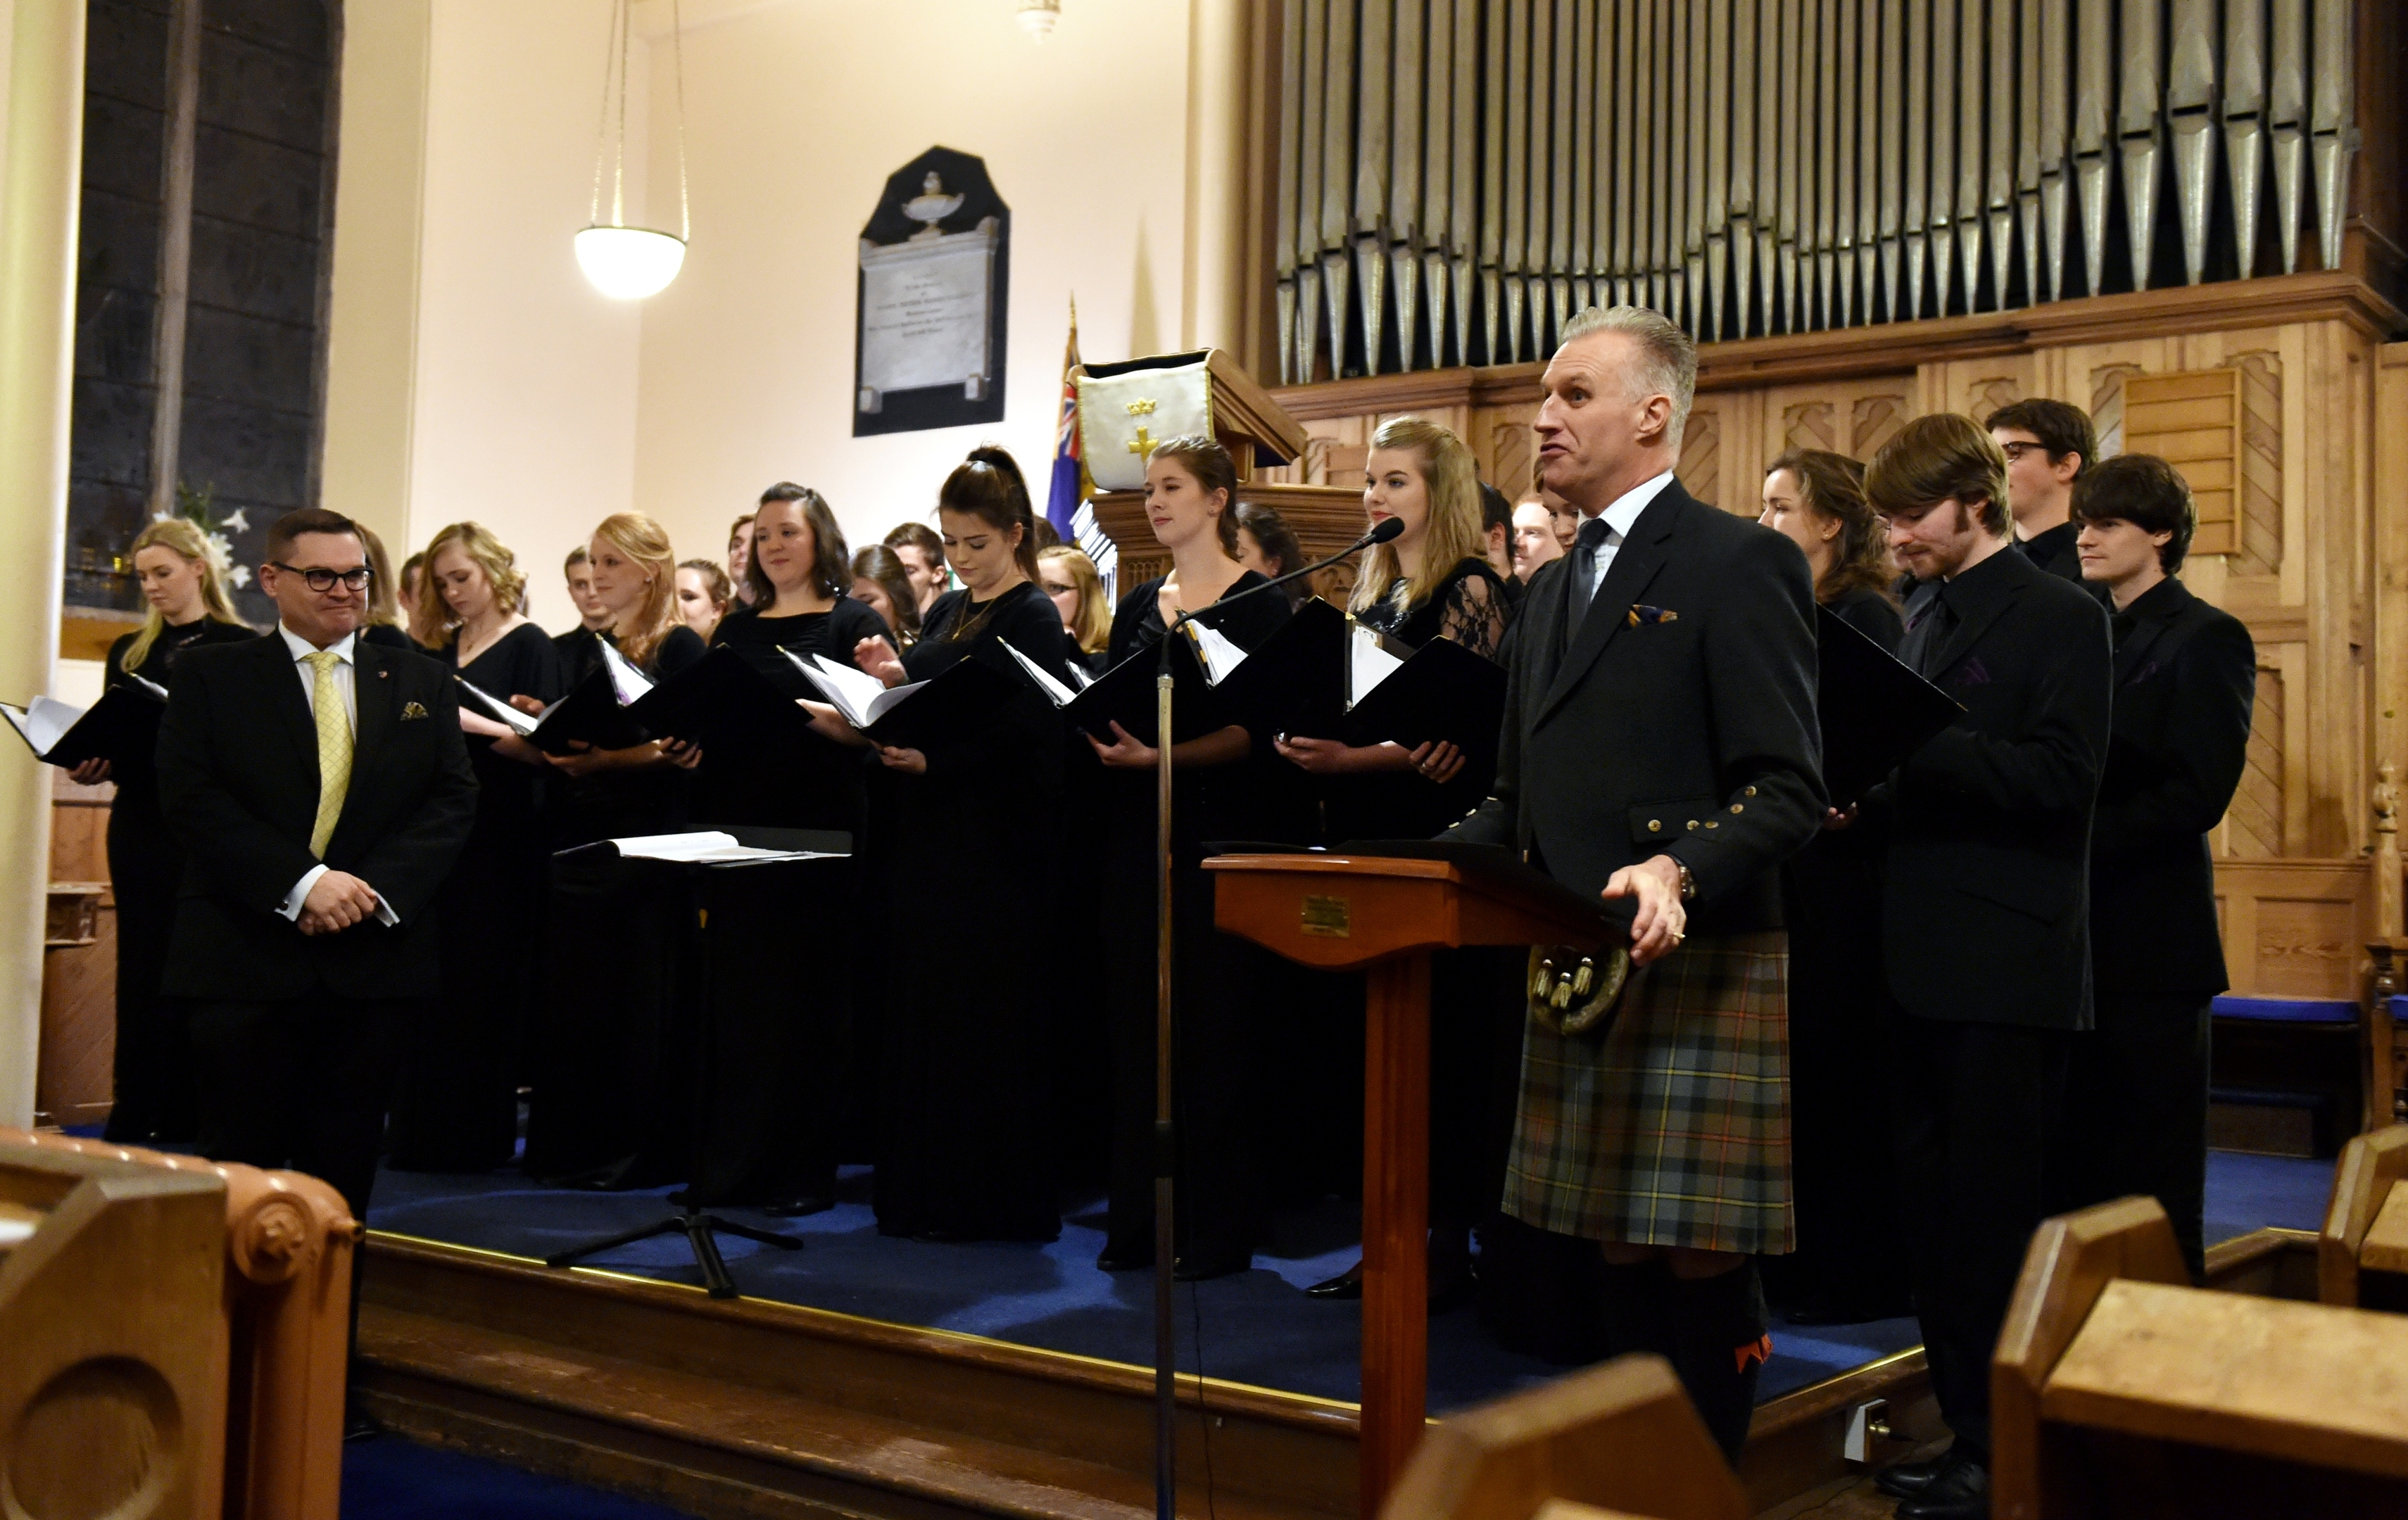 The Prince Charles, Duke of Rothesay and The Dutchess of Rothesay, attended a performance of Robert Burns poetry with music by Professor Paul Mealor and the Aberdeen University Chamber Choir last week